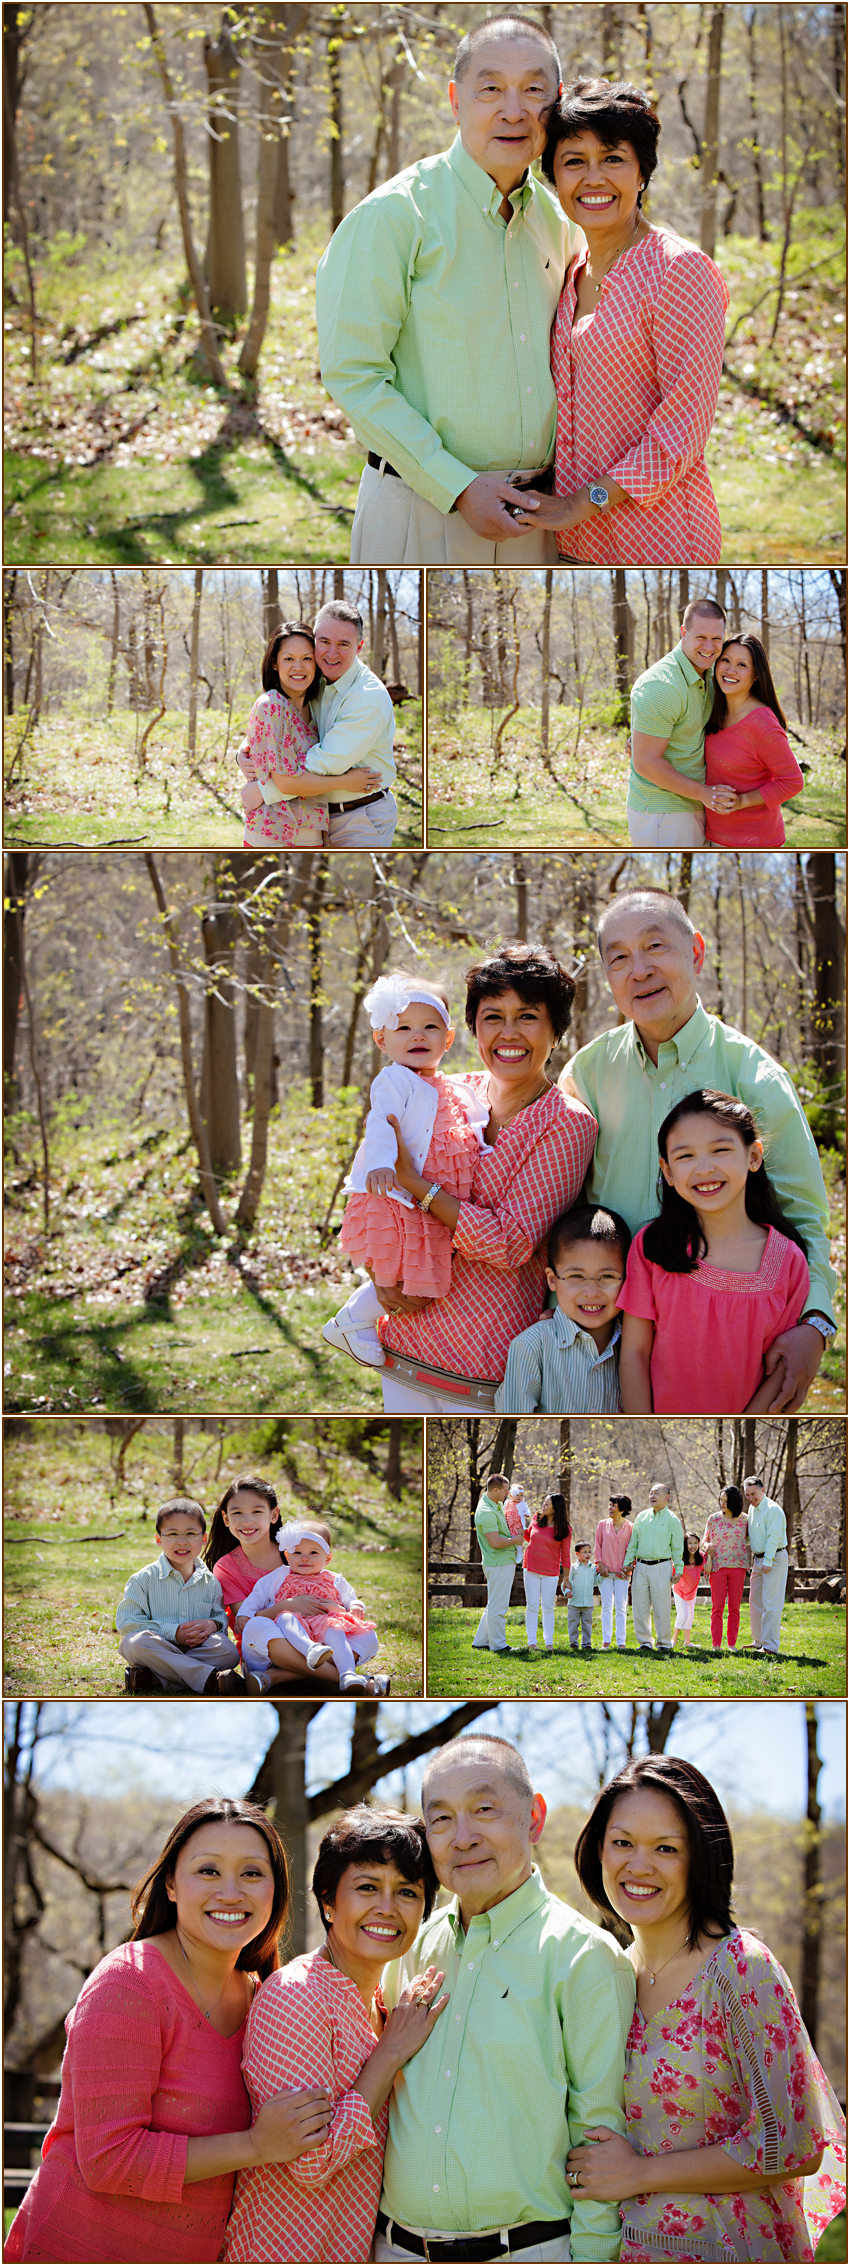 Charlotte, NC Family Photographer captures extended family portraits for Spring